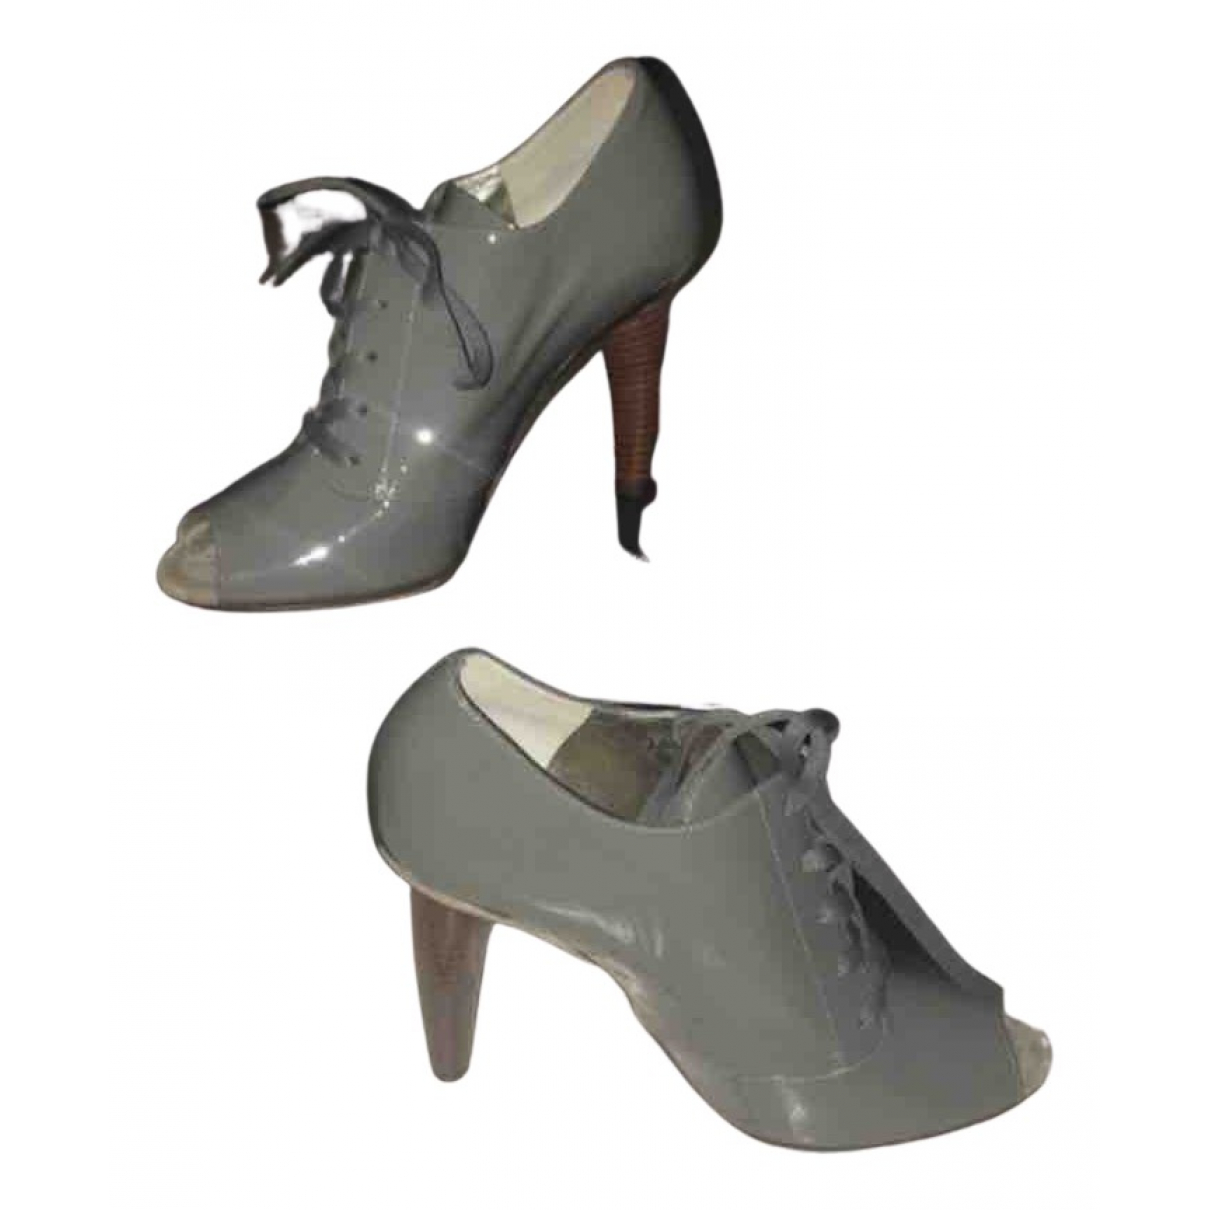 D&g N Grey Patent leather Ankle boots for Women 36 EU